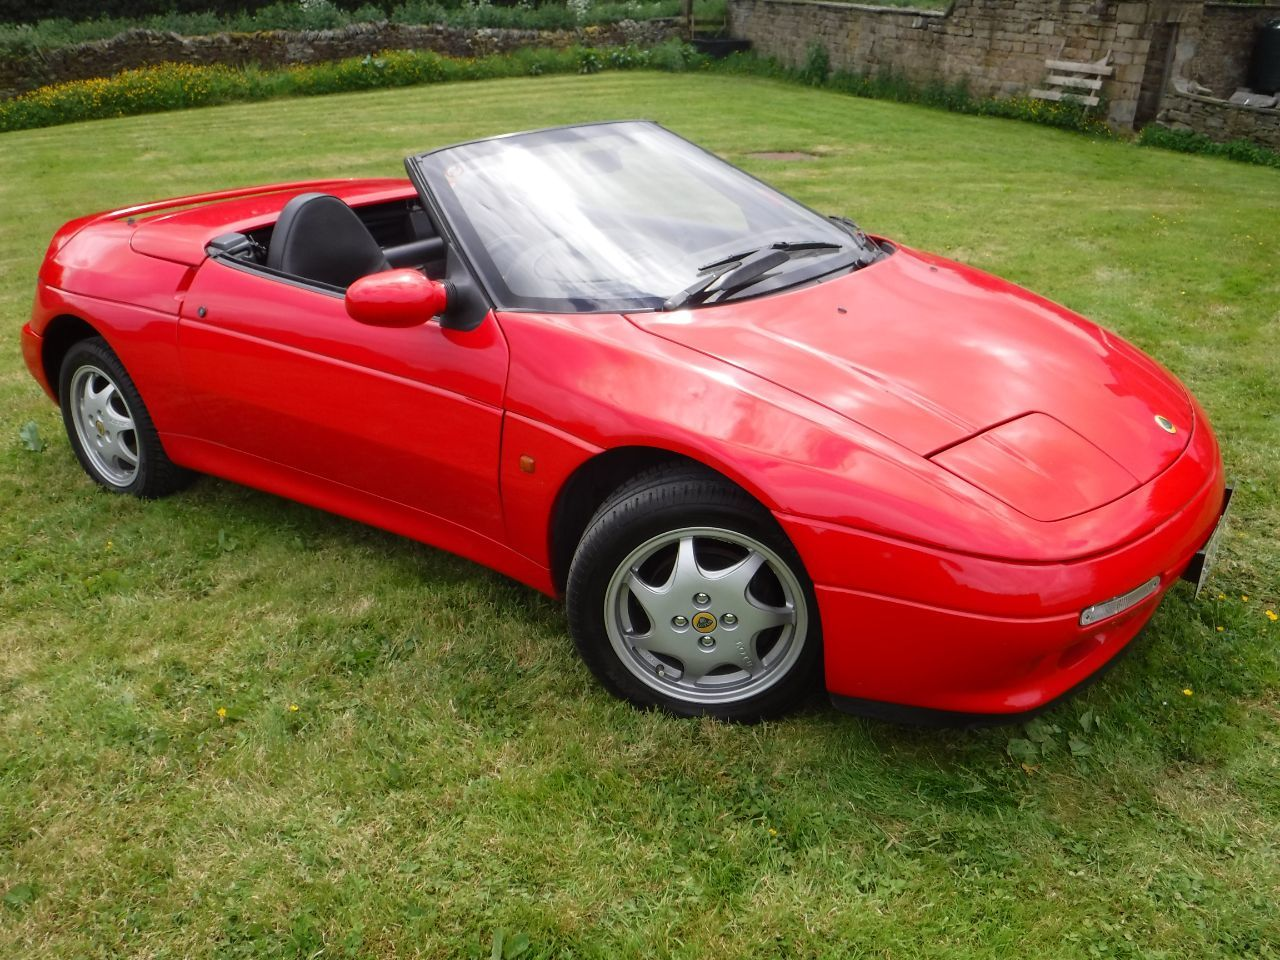 Lotus Elan 1.6 SE TURBO Convertible Petrol Calypso Red